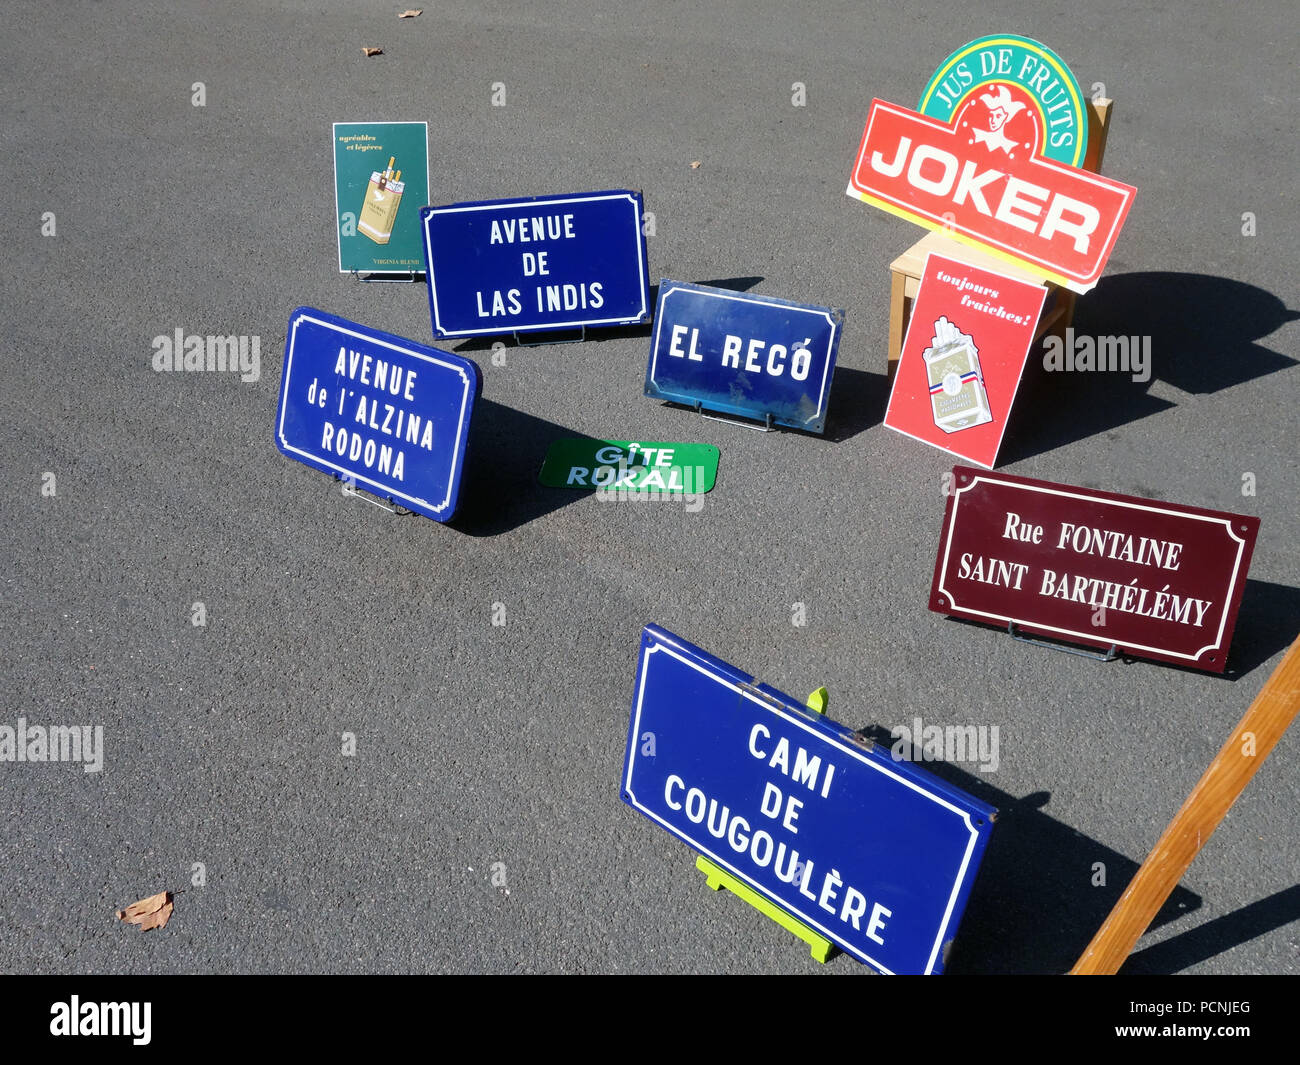 Vintage Signs Stock Photos & Vintage Signs Stock Images - Alamy